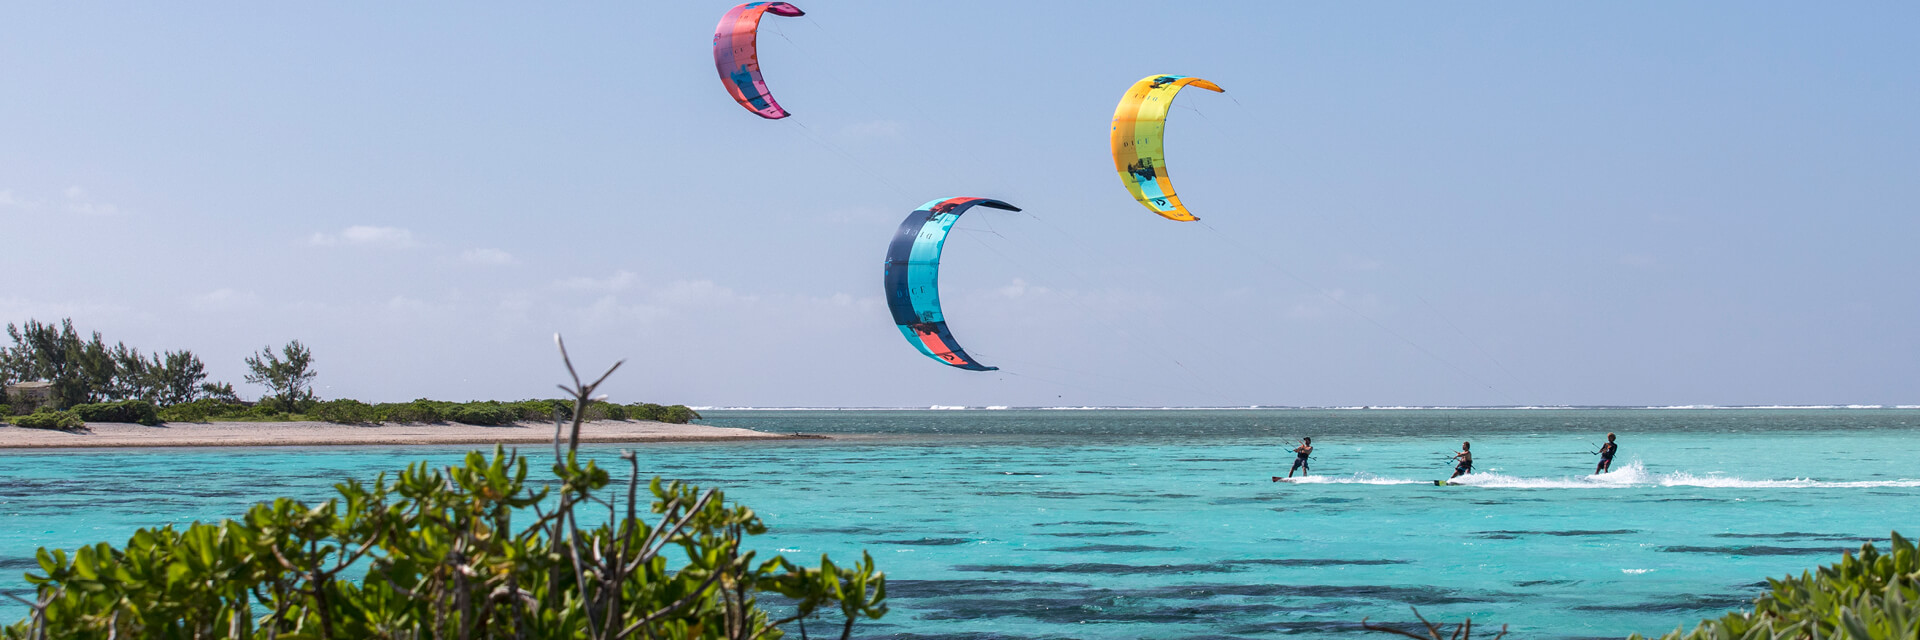 Image result for kitesurfing in saint brandon